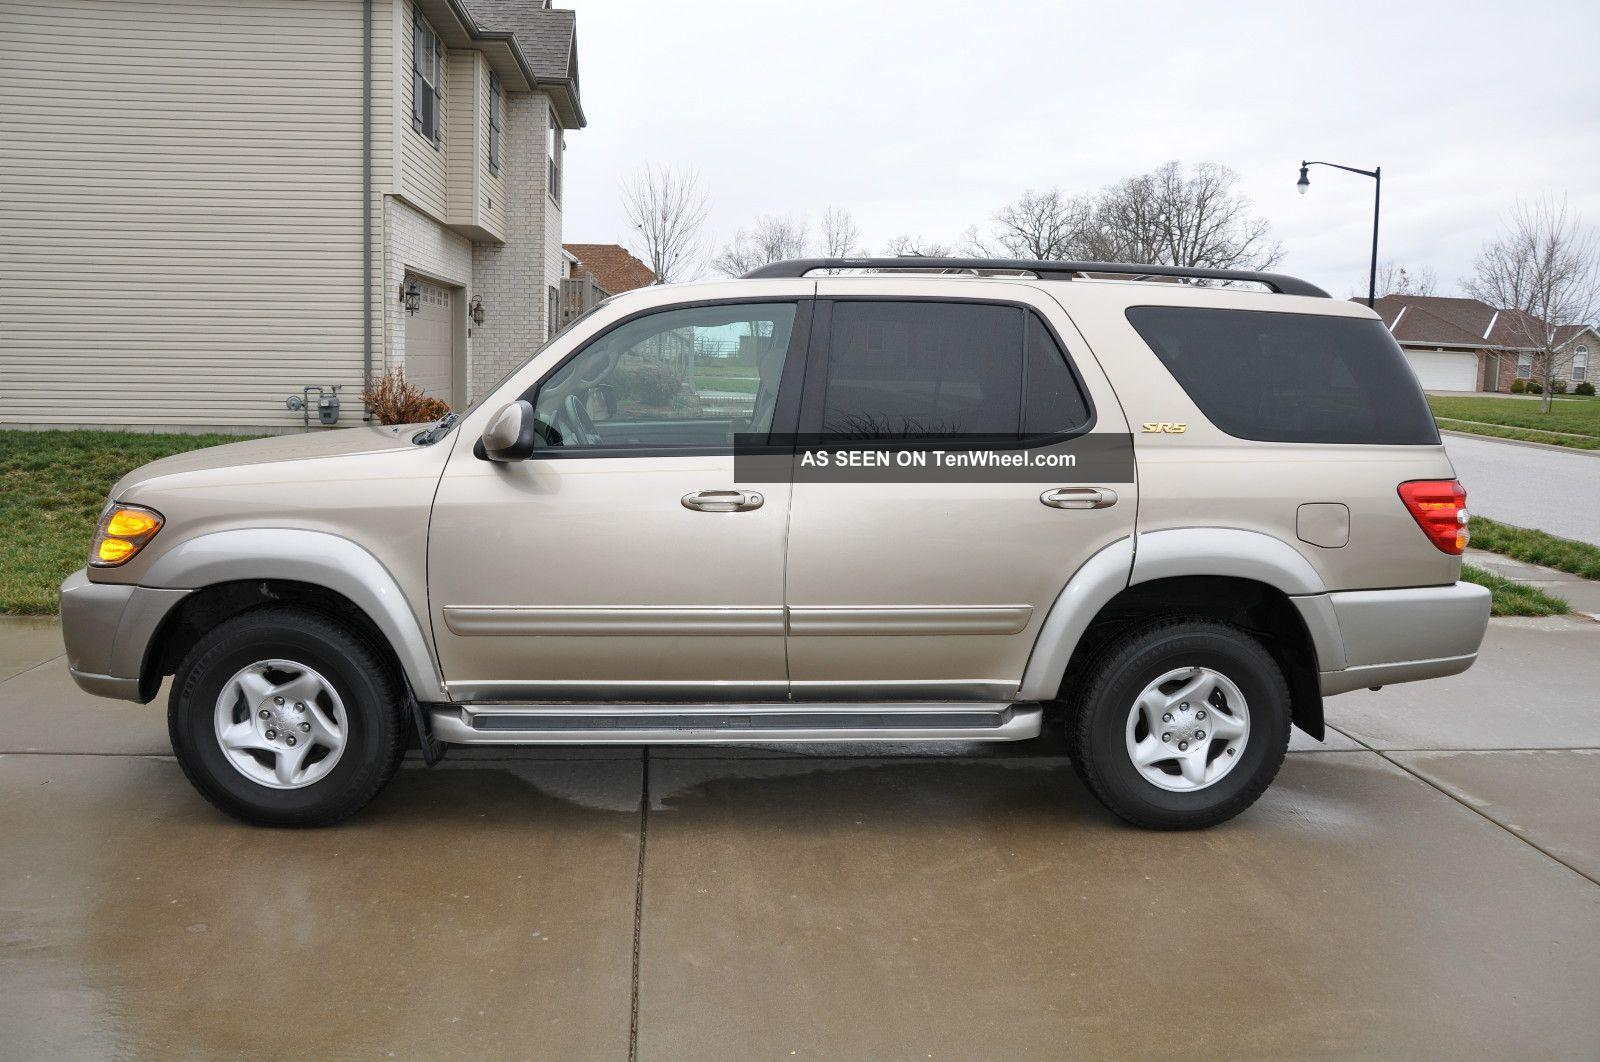 2002 toyota sequoia information and photos zombiedrive. Black Bedroom Furniture Sets. Home Design Ideas